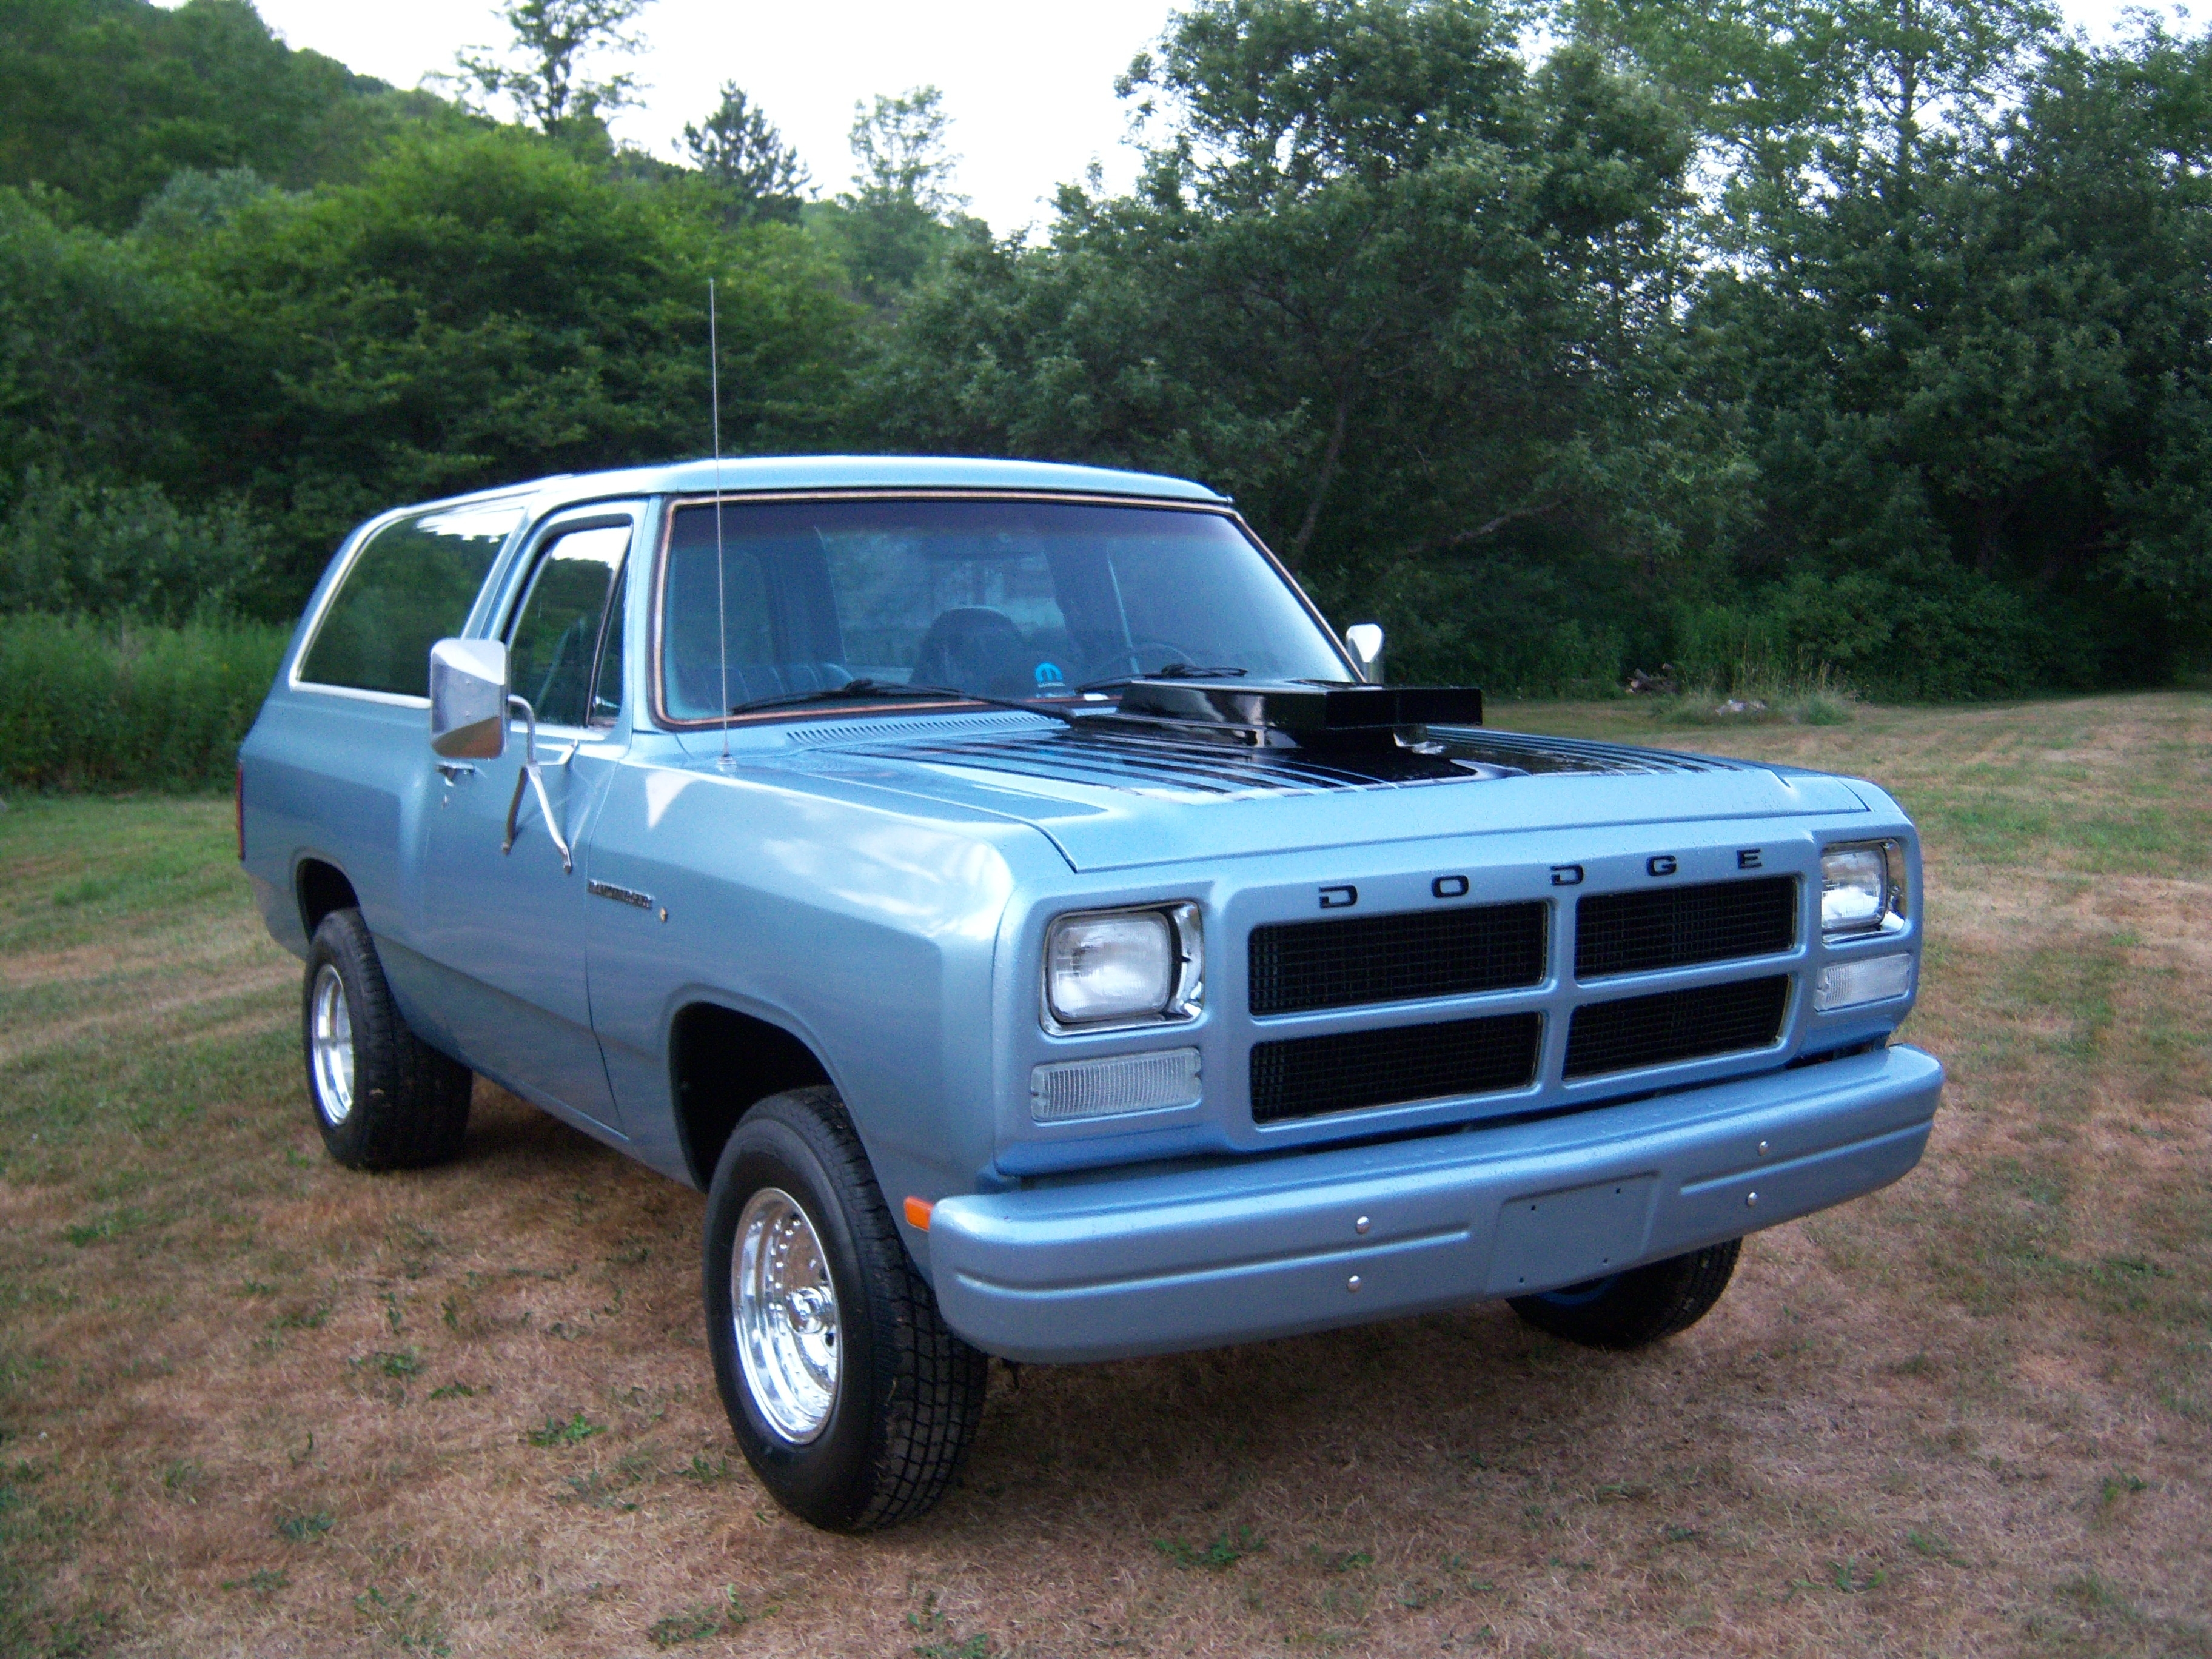 full gainsville suv america in sale pinterest north classifieds ga ads for size ramcharger pin dodge craigslist owner on by